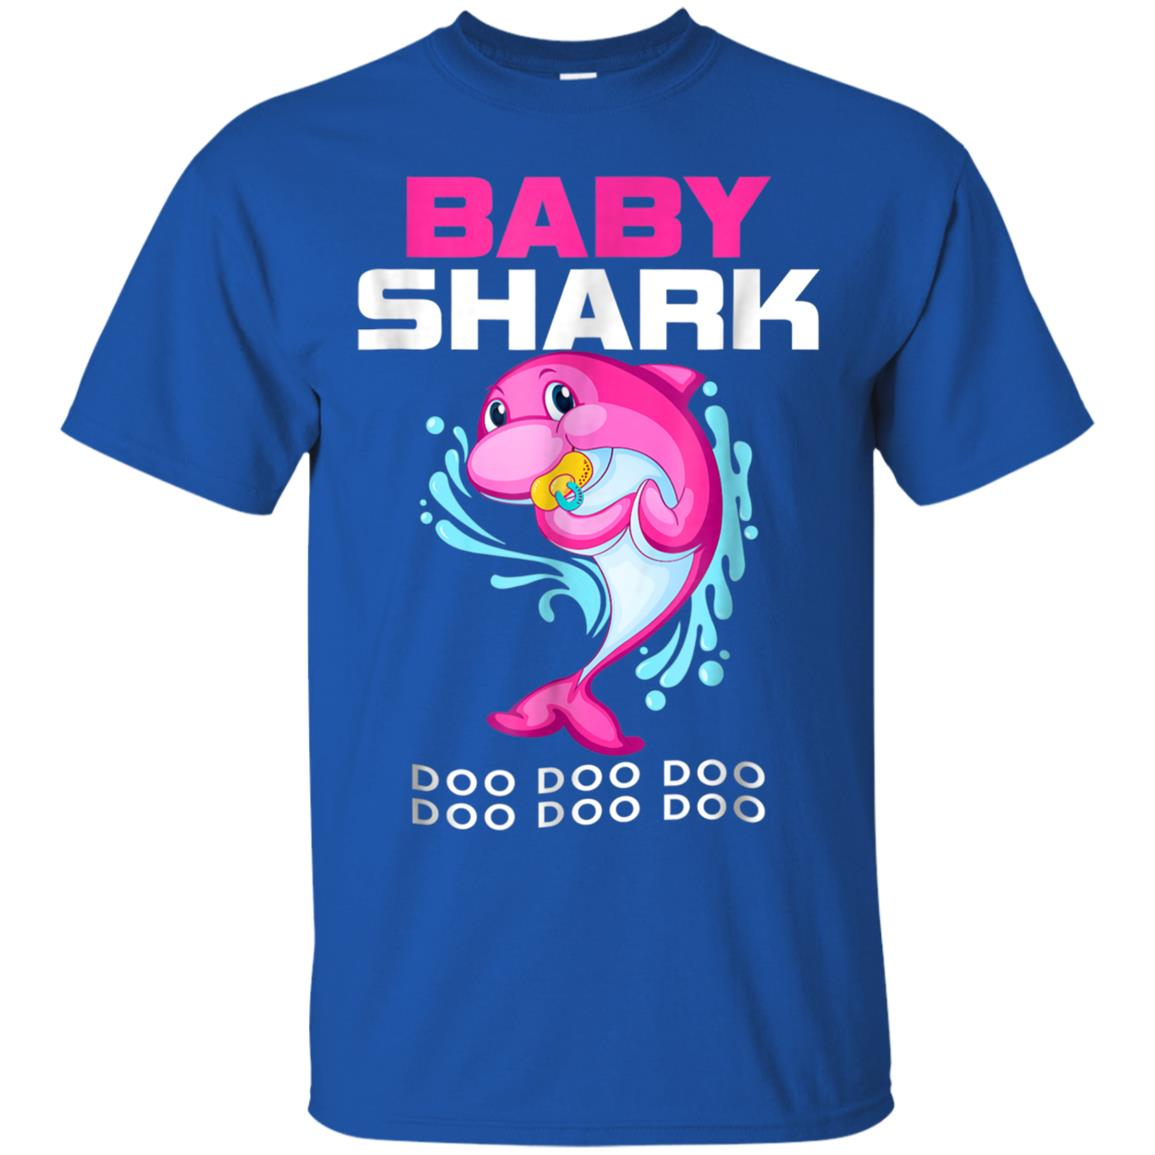 cf48ec39 Awesome baby shark shirt doo doo cute gift from daddy mommy grandpa ...